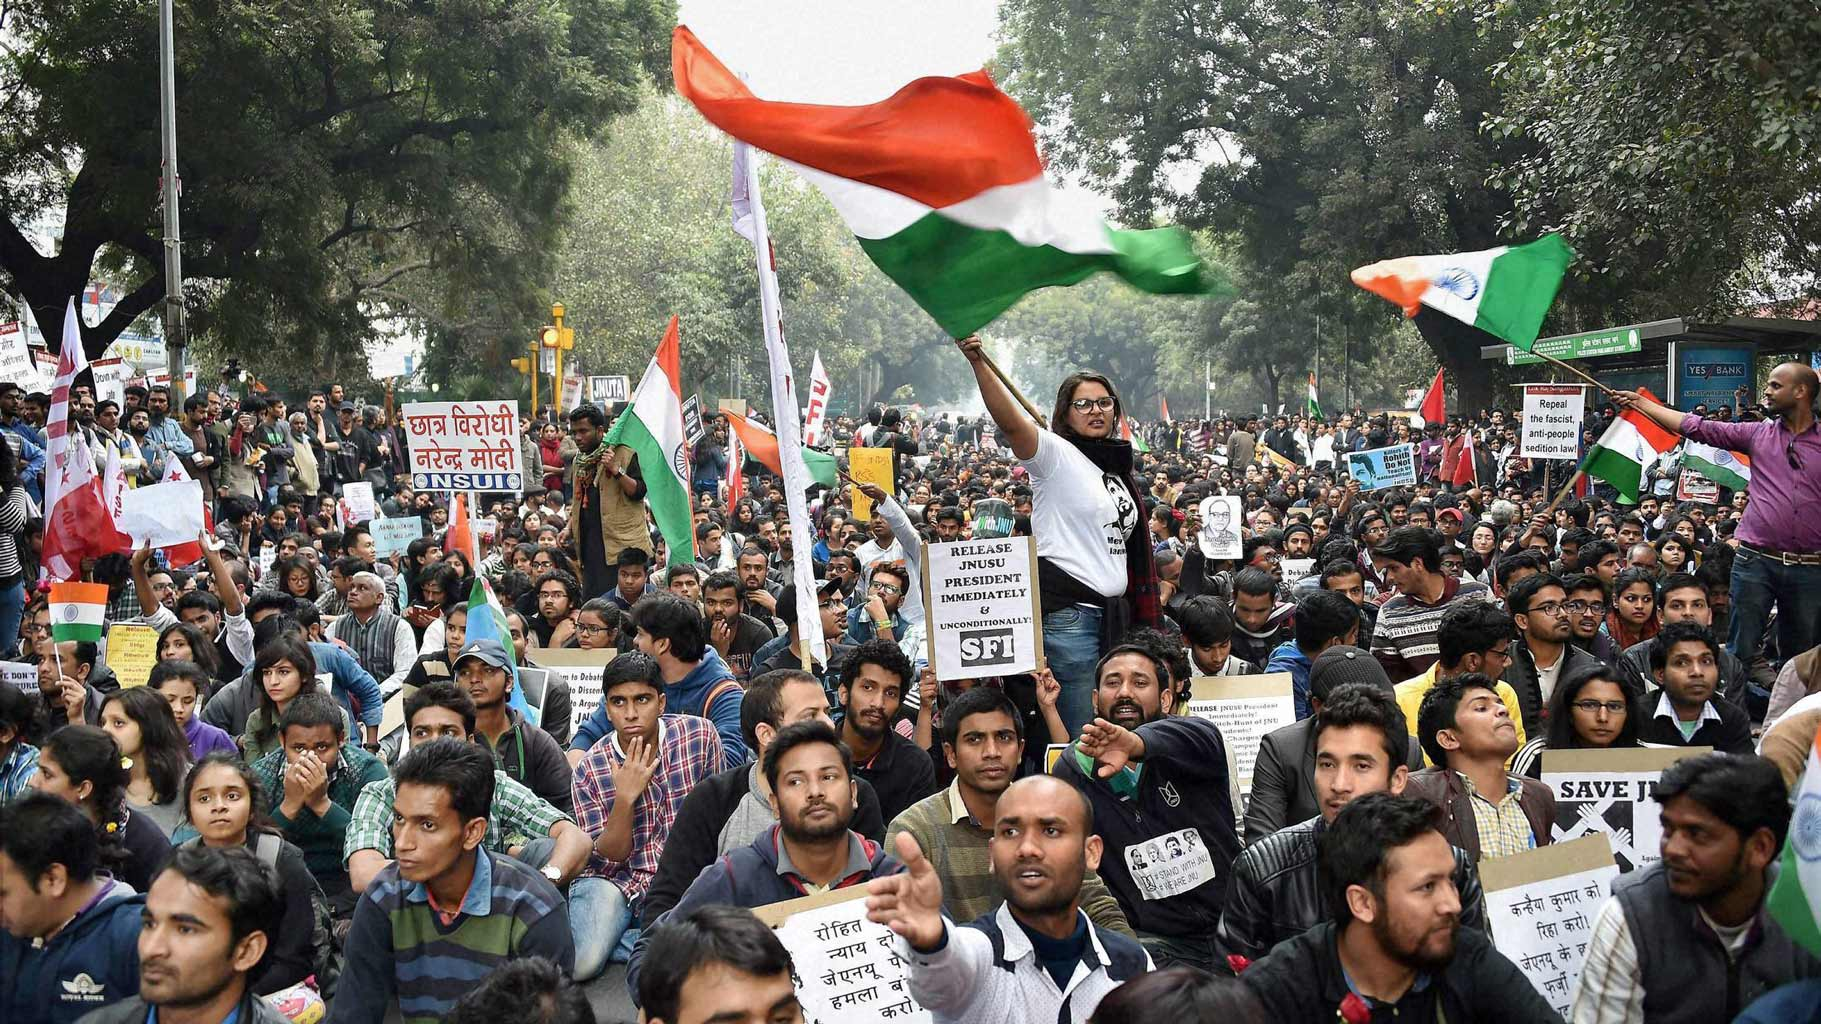 A protest at JNU. Credit: PTI